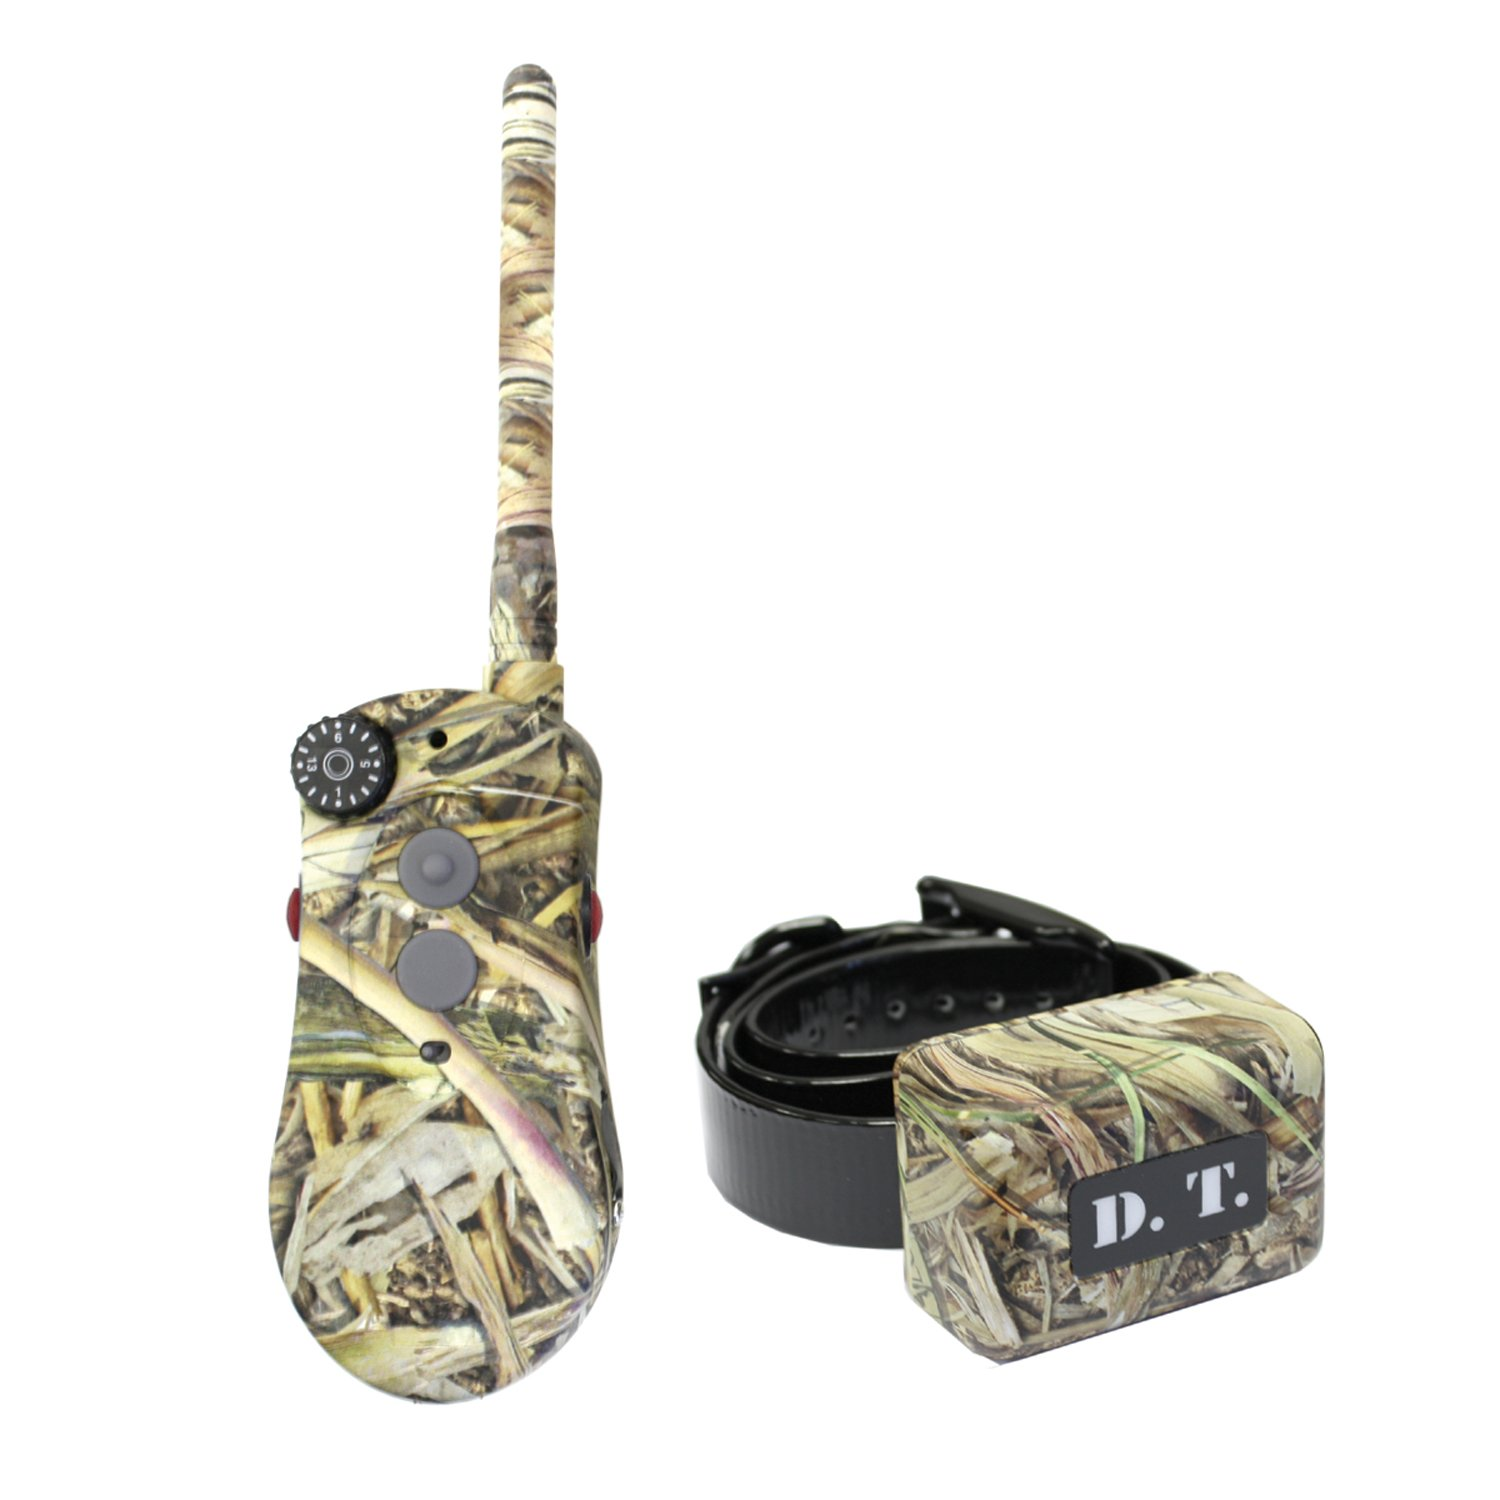 D.T. Systems H2O Series 1820 Plus Dog Training System Fatal Flight Camo Coverup Expandable to 3 Dogs with Positive Vibration